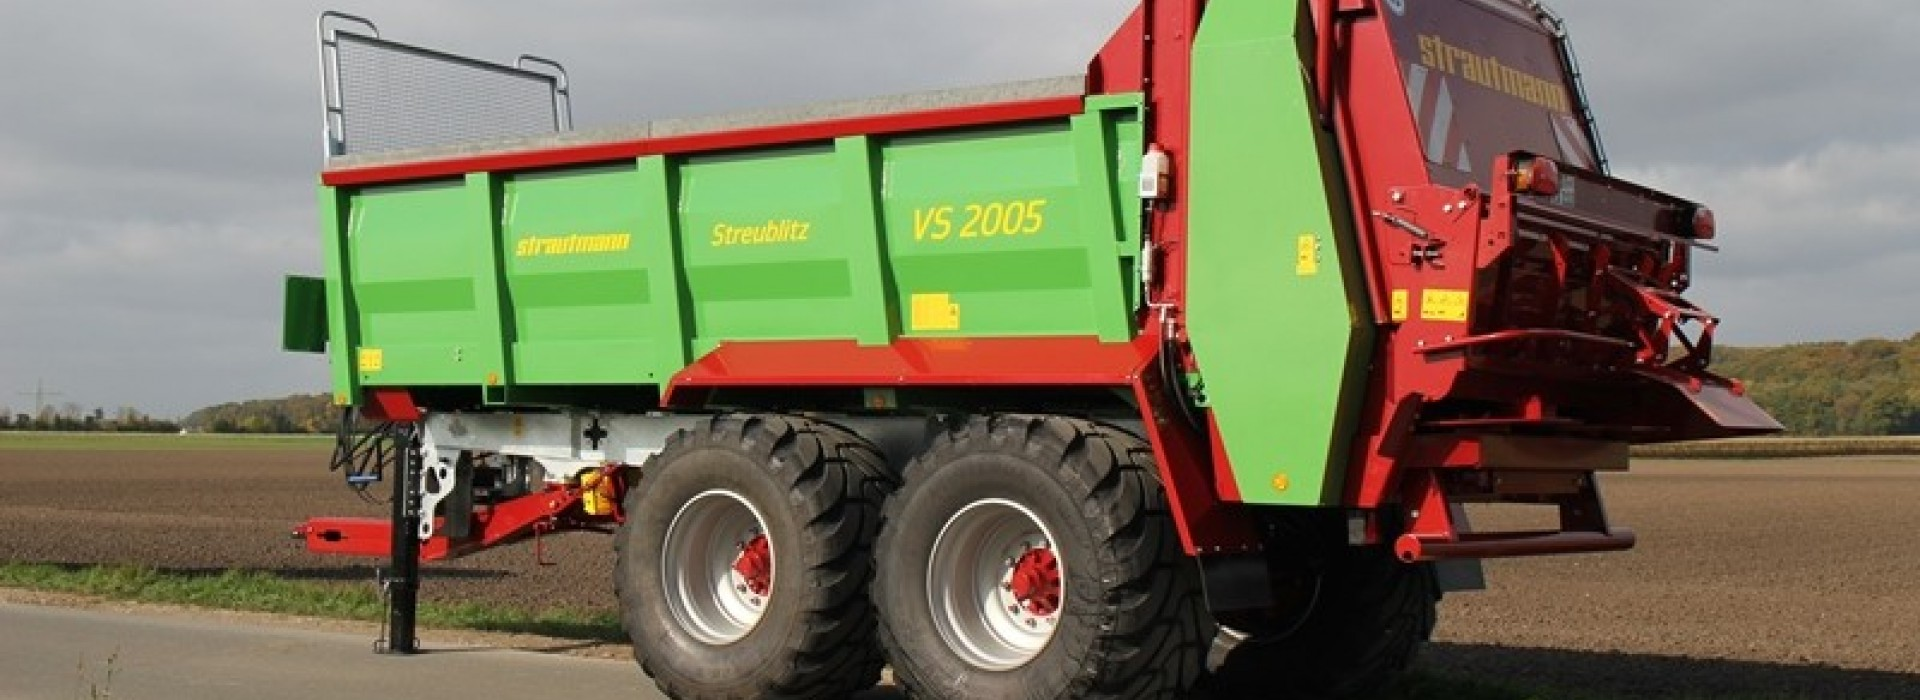 VS series Manure spreaders